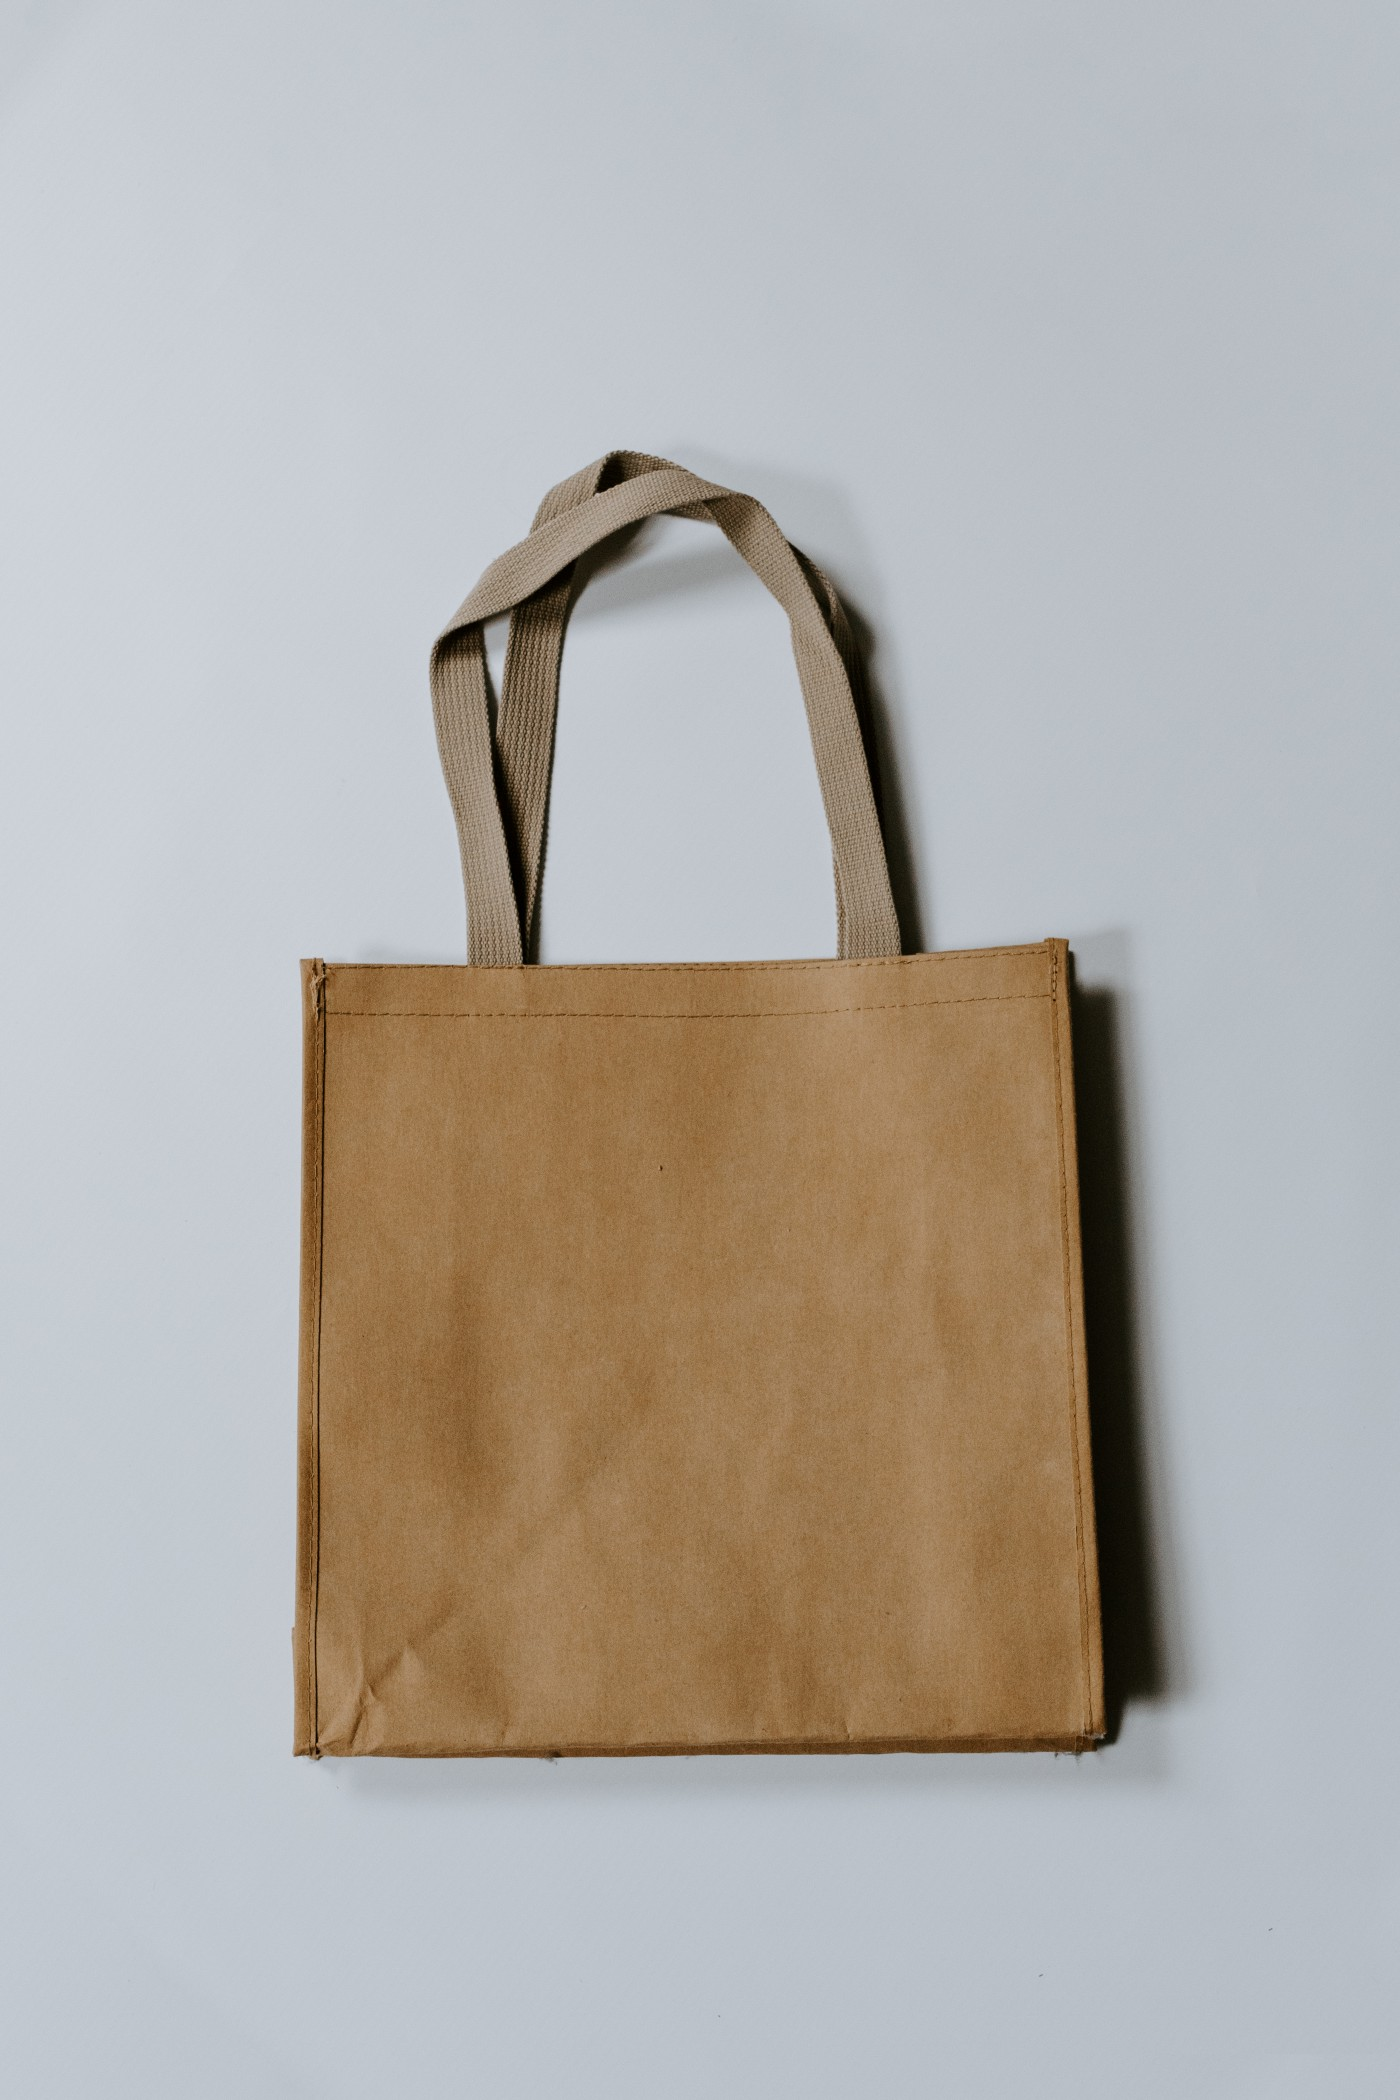 paper and cloth bags are worst for the envirnment